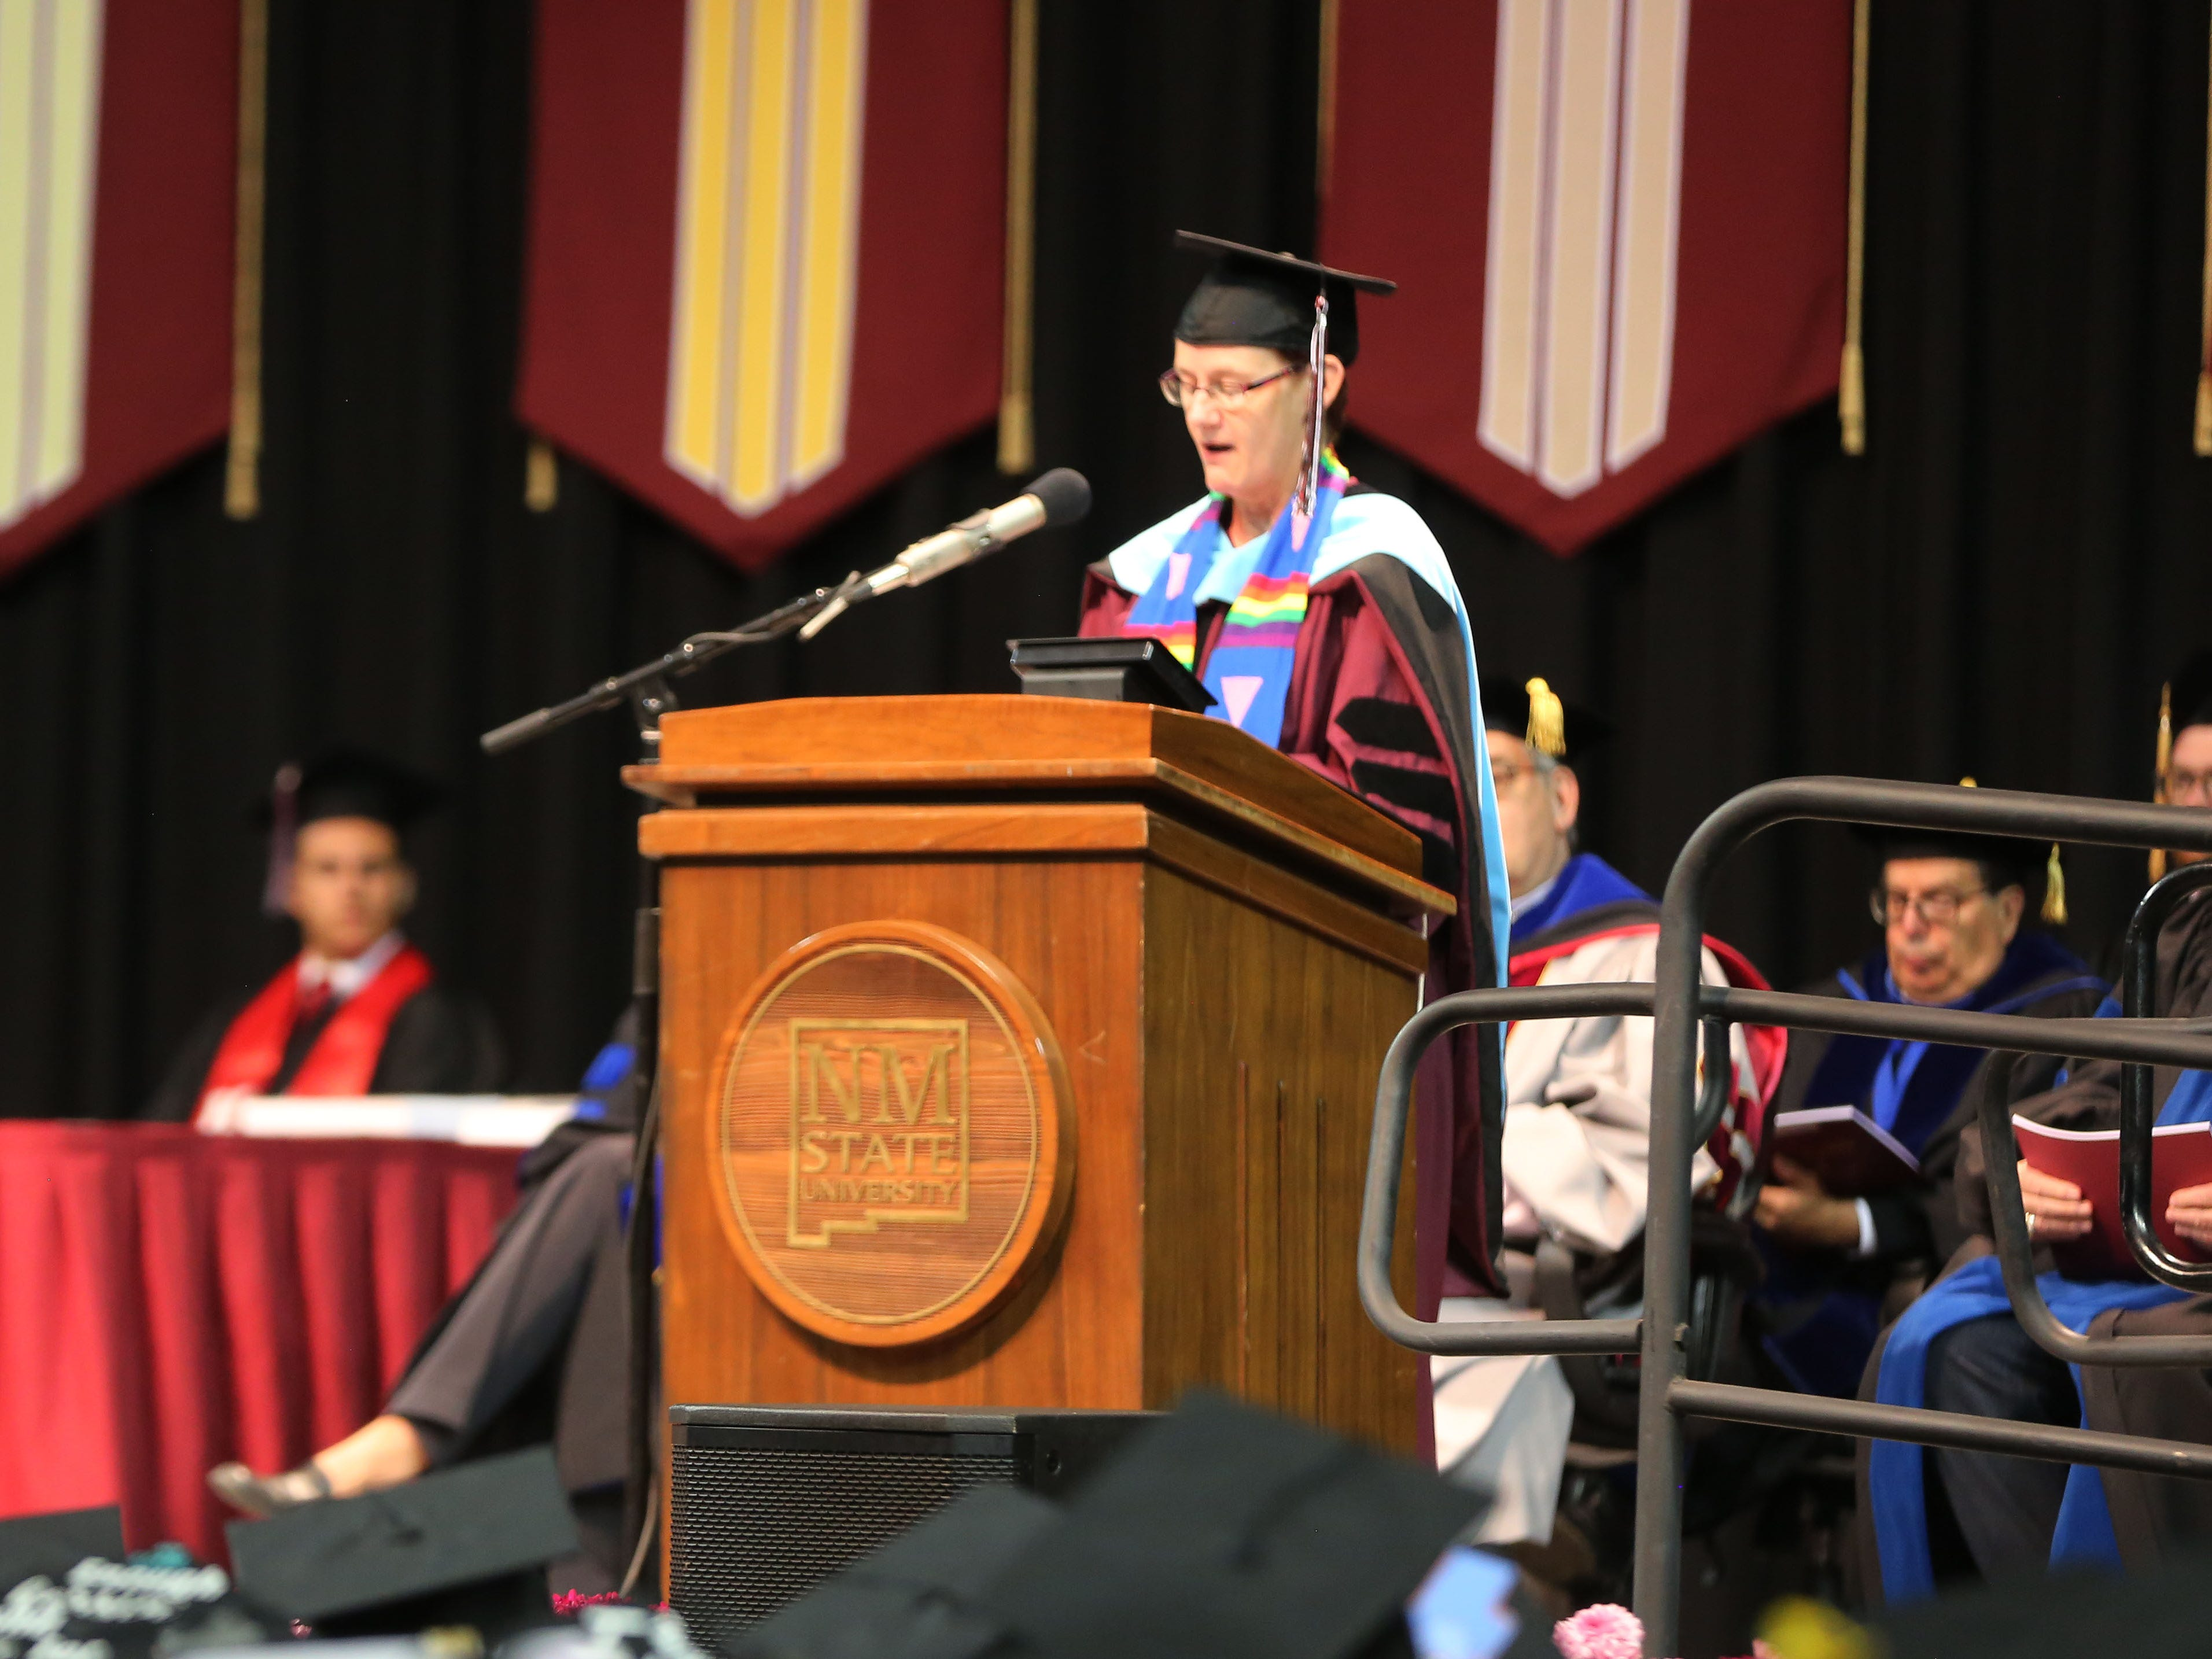 "2019 Aggie commencement speaker Mary Prentice, an associate professor in the school of Teacher Preparation, Administration and Leadership at New Mexico State University, implored graduates Saturday May 11, 2019, to live courageously. ""Commit to the journey, even if you feel afraid,"" she said."